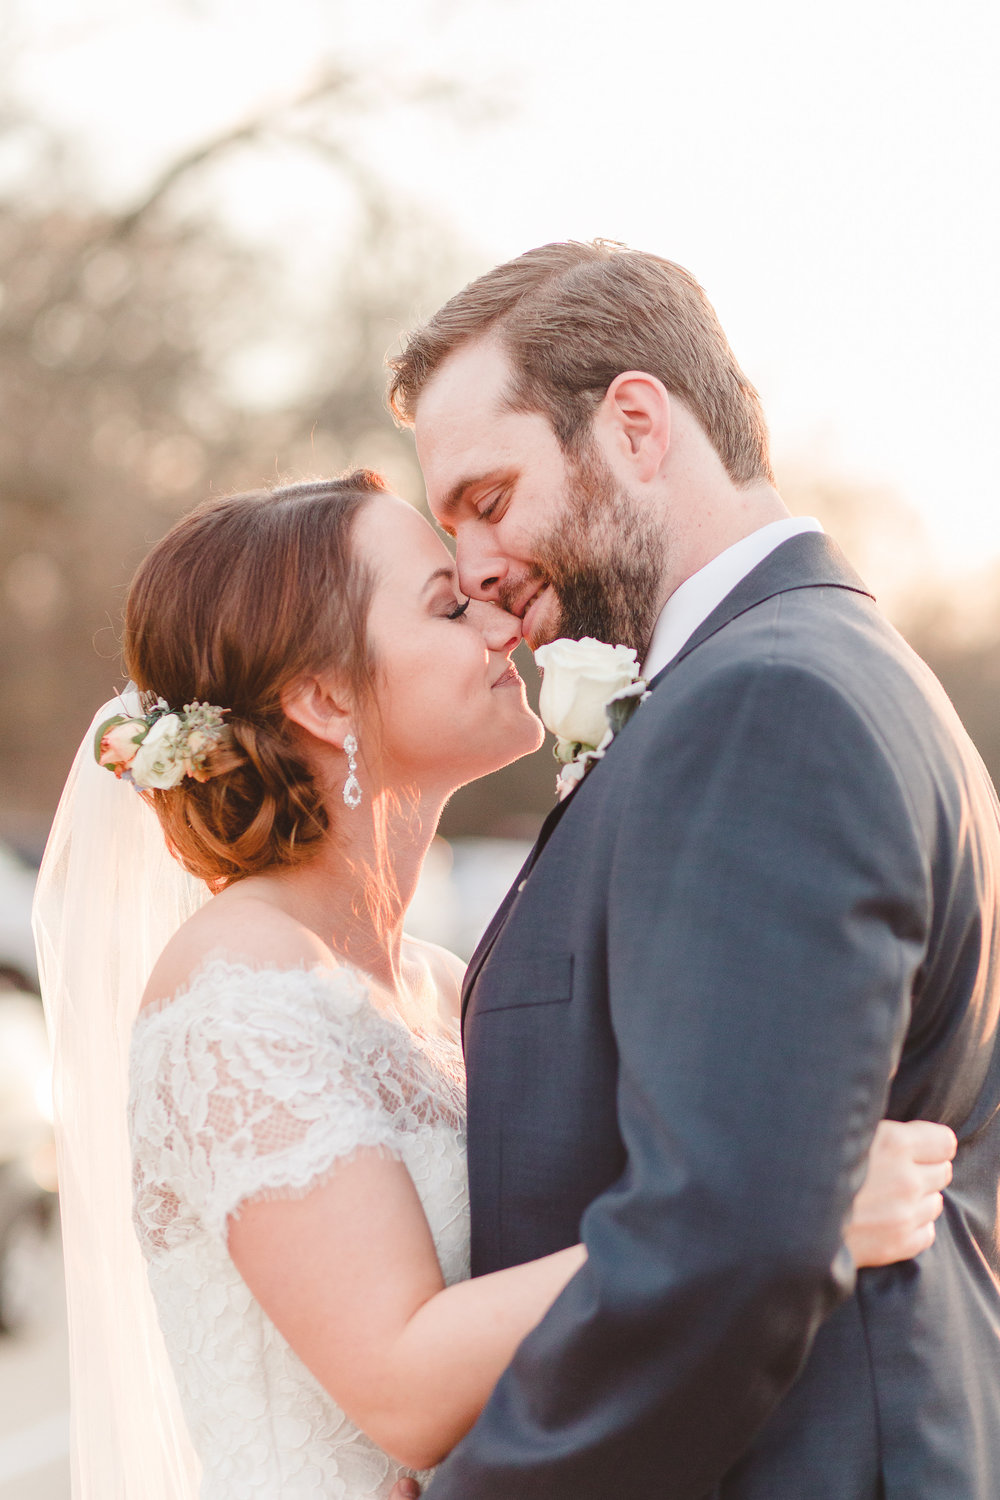 Bride and Groom Sunset Pictures | Rose Gold and Dusty Blue Winter Wedding in Dallas, TX